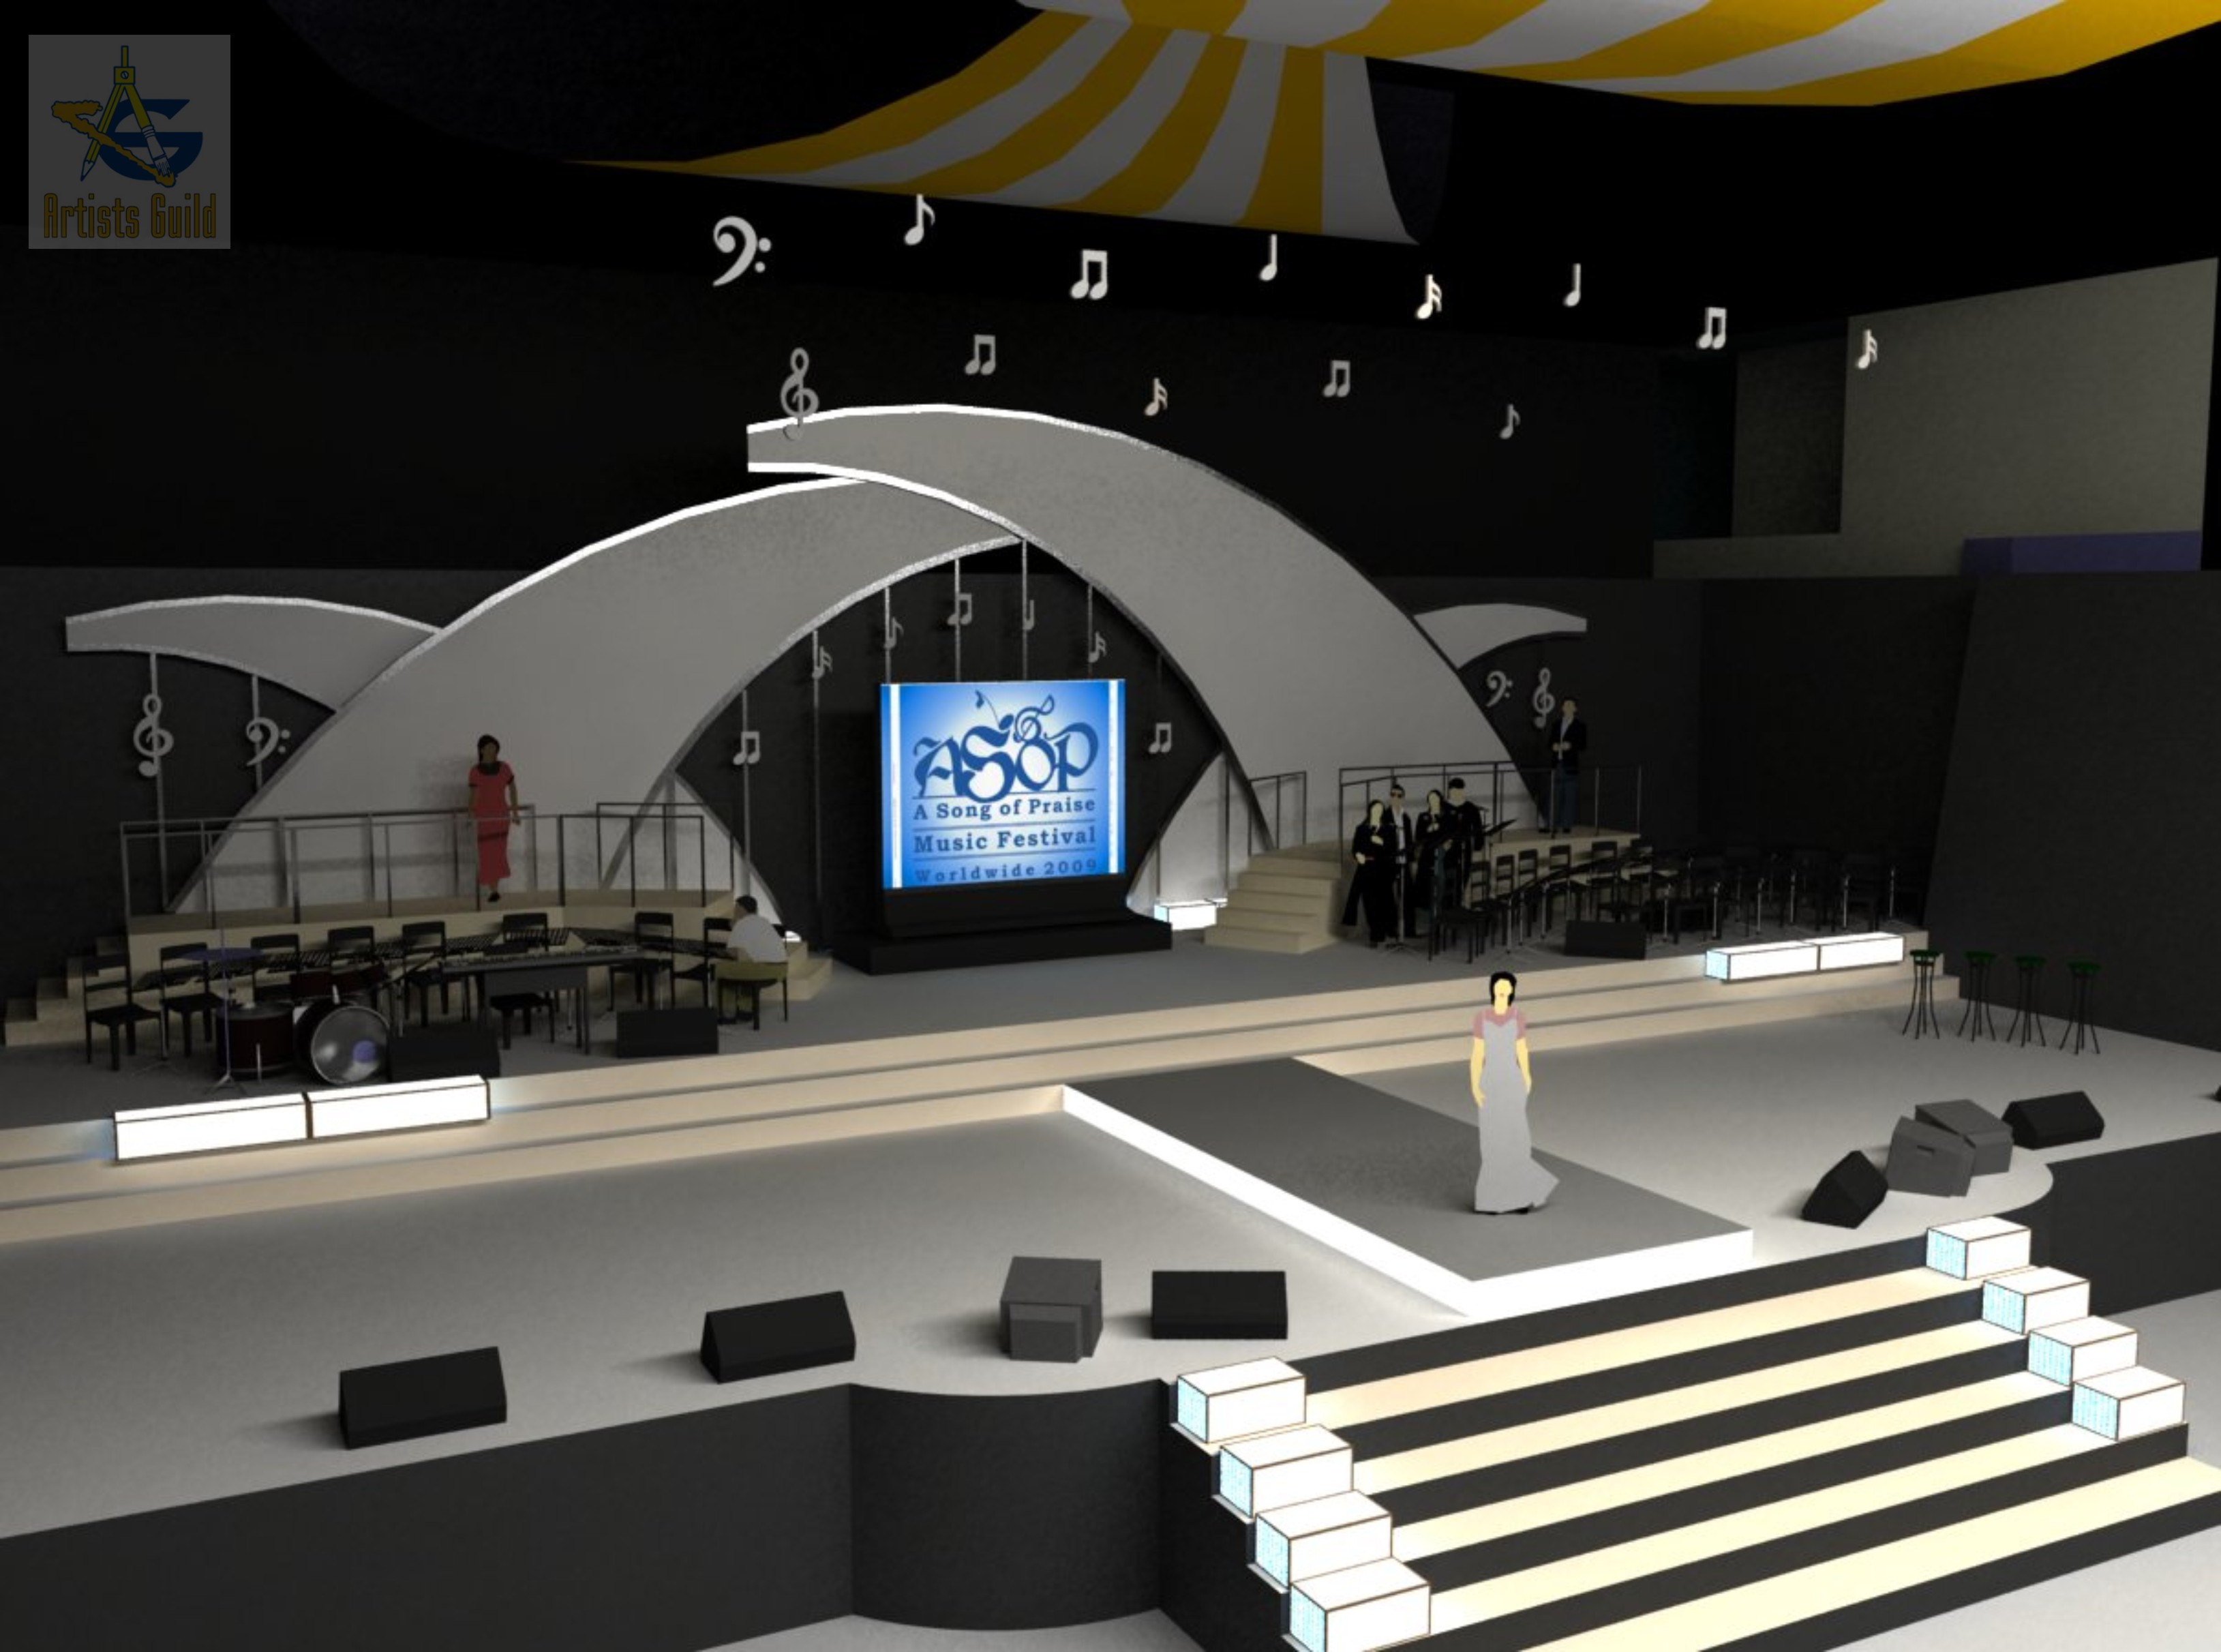 Concert Stage Design Ideas 1000 images about multi stage inspiration on pinterest stage design church stage design and set design Pin Concert Stage Design Ideas On Pinterest